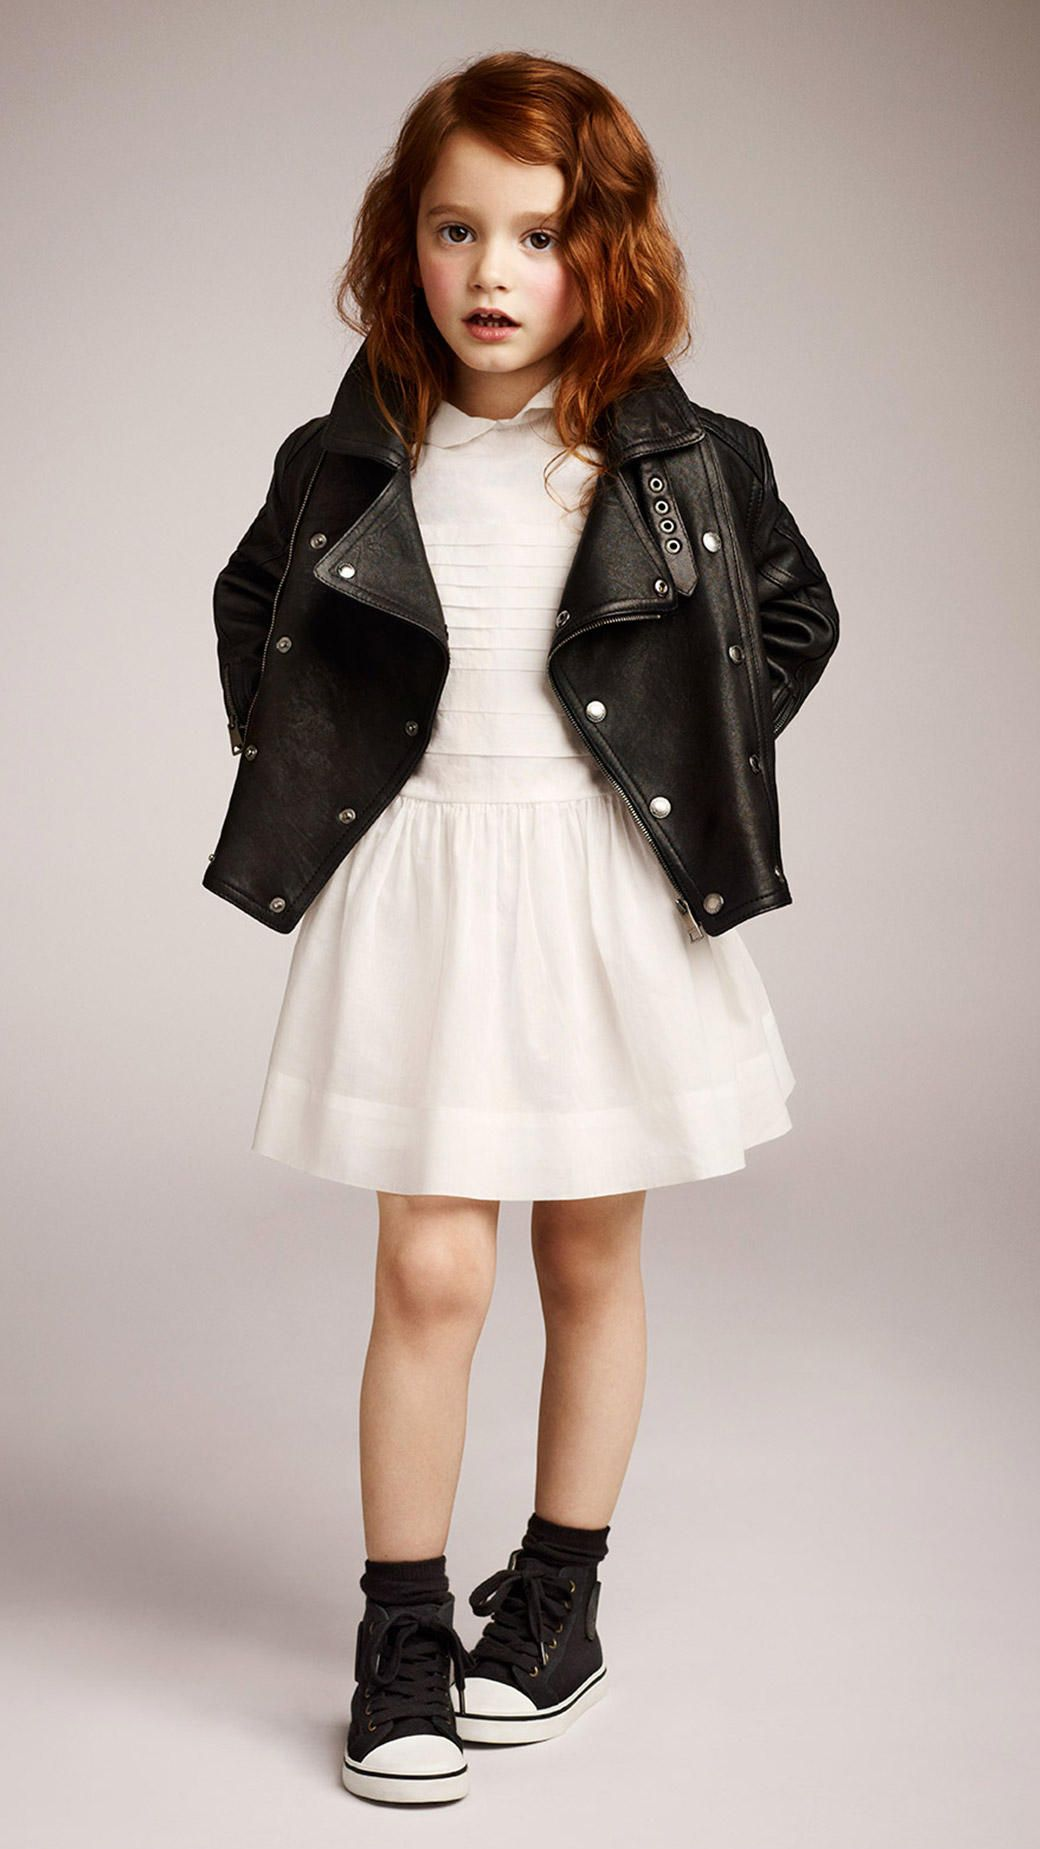 Girls Clothes & Accessories